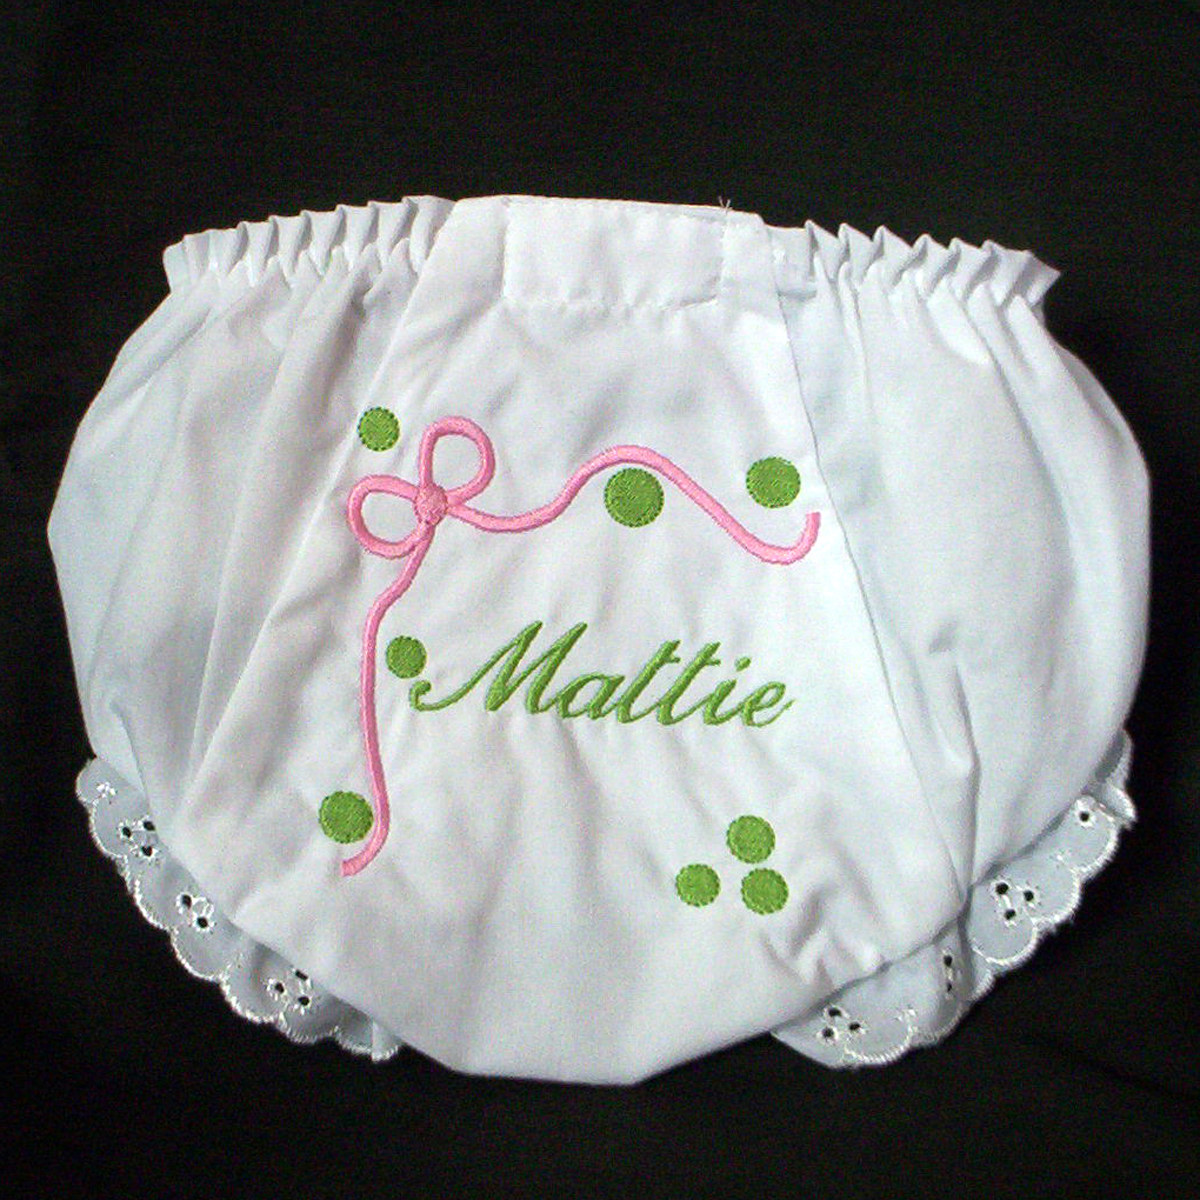 dab752a5a Ribbon and Dots Baby Bloomer - Diaper Cover